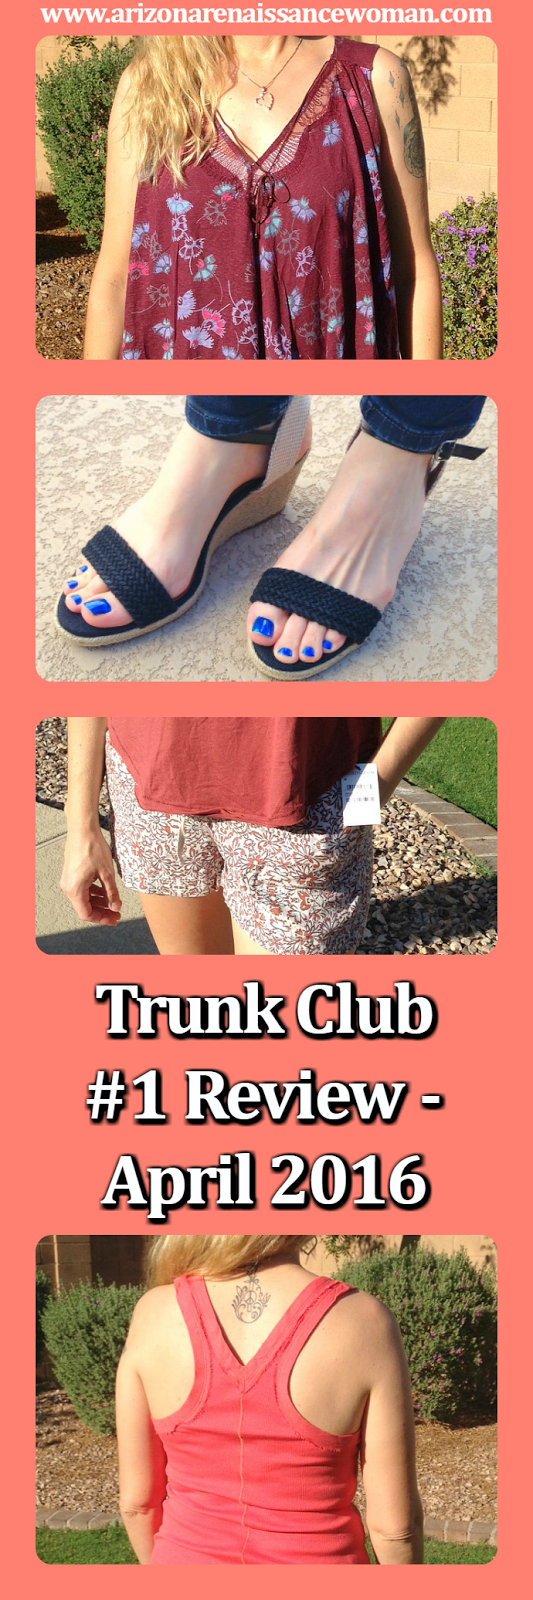 Trunk Club Review - April 2016 - Collage